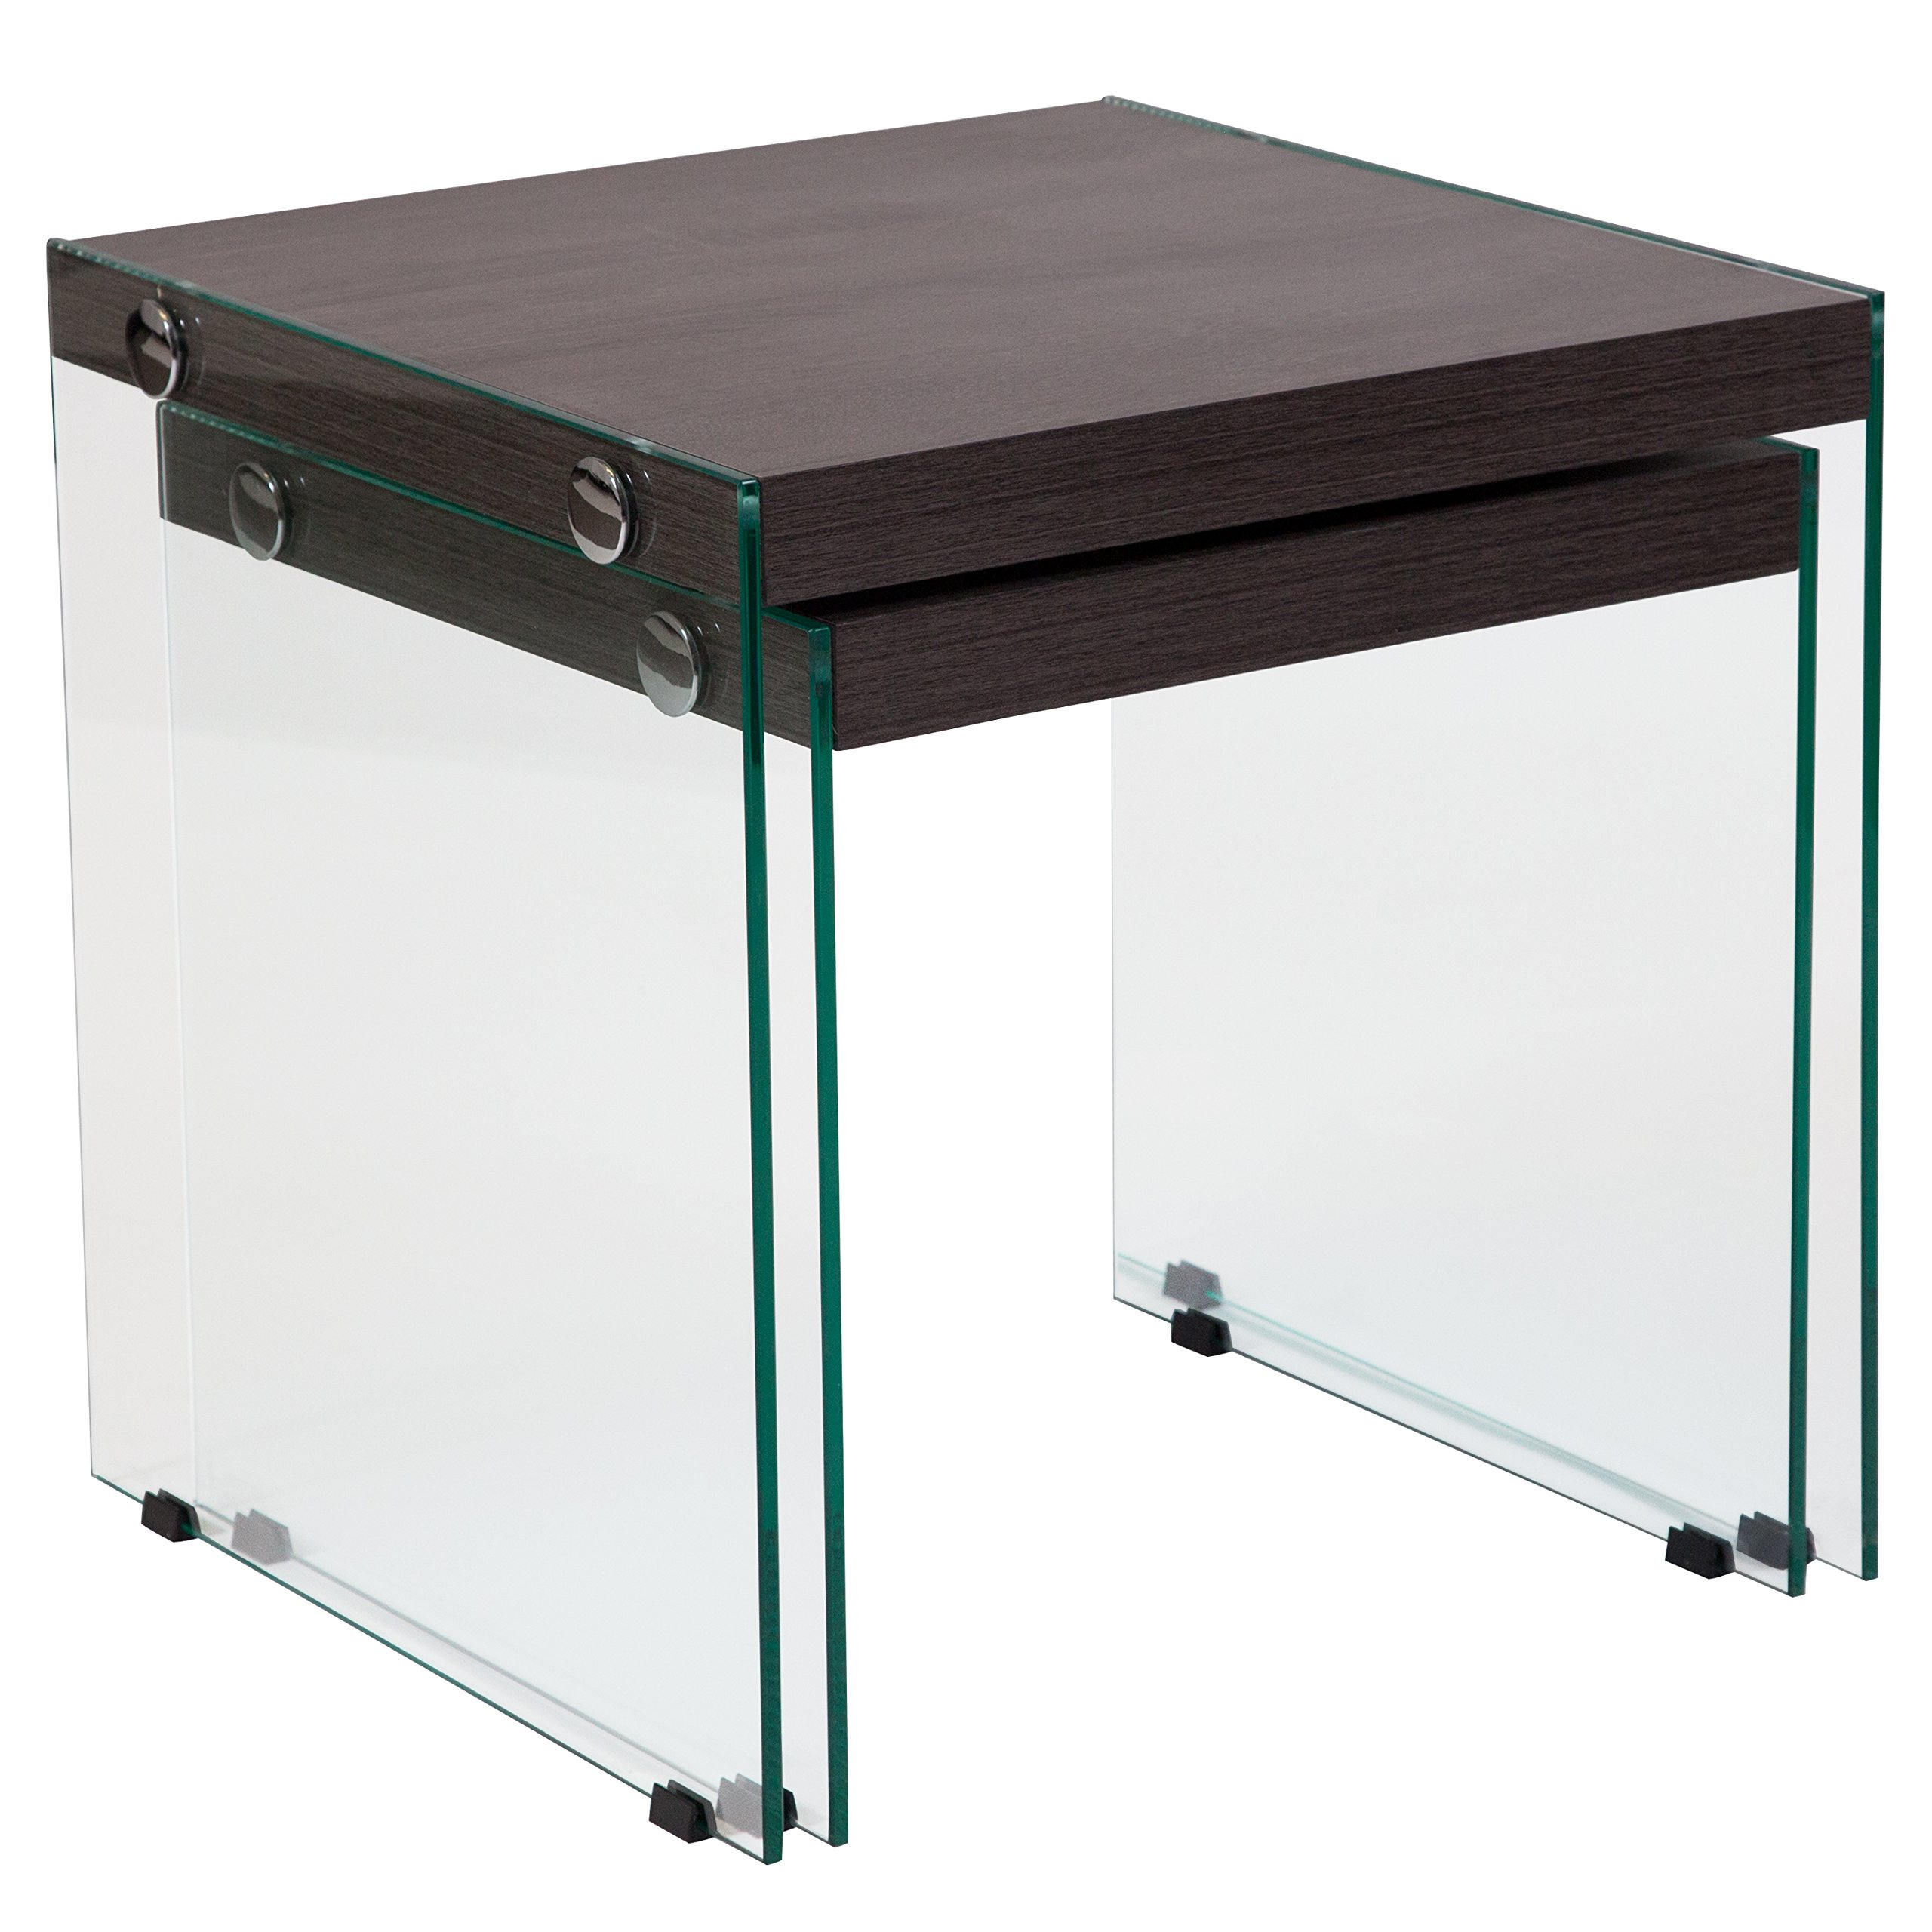 Flash Furniture Cedar Lane Collection Driftwood Wood Grain Finish Nesting Tables with Glass Frame